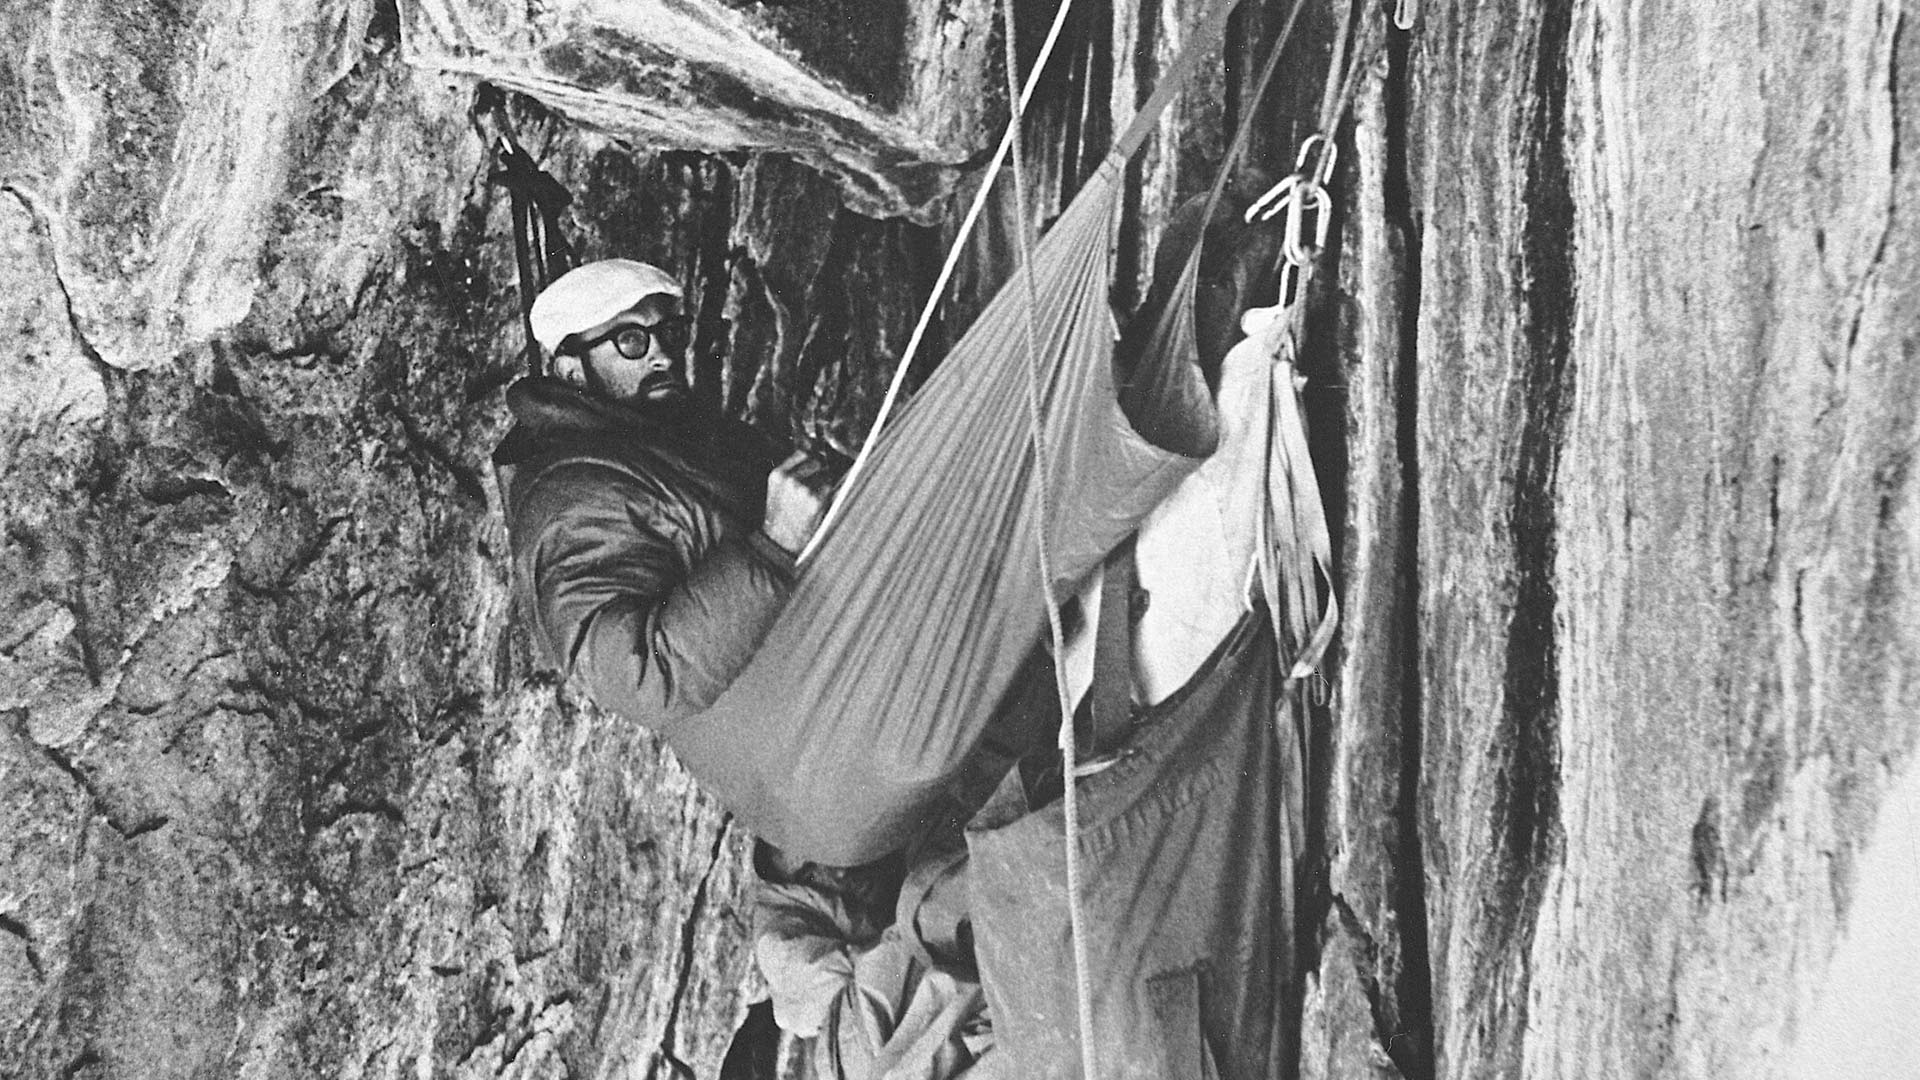 Royal Robbins and Yvon Chouinard (peeking out of the bottom), bivouacking in The Black Cave during the first ascent of the North America Wall, El Capitan, Yosemite, California. 1964. CHUCK PRATT